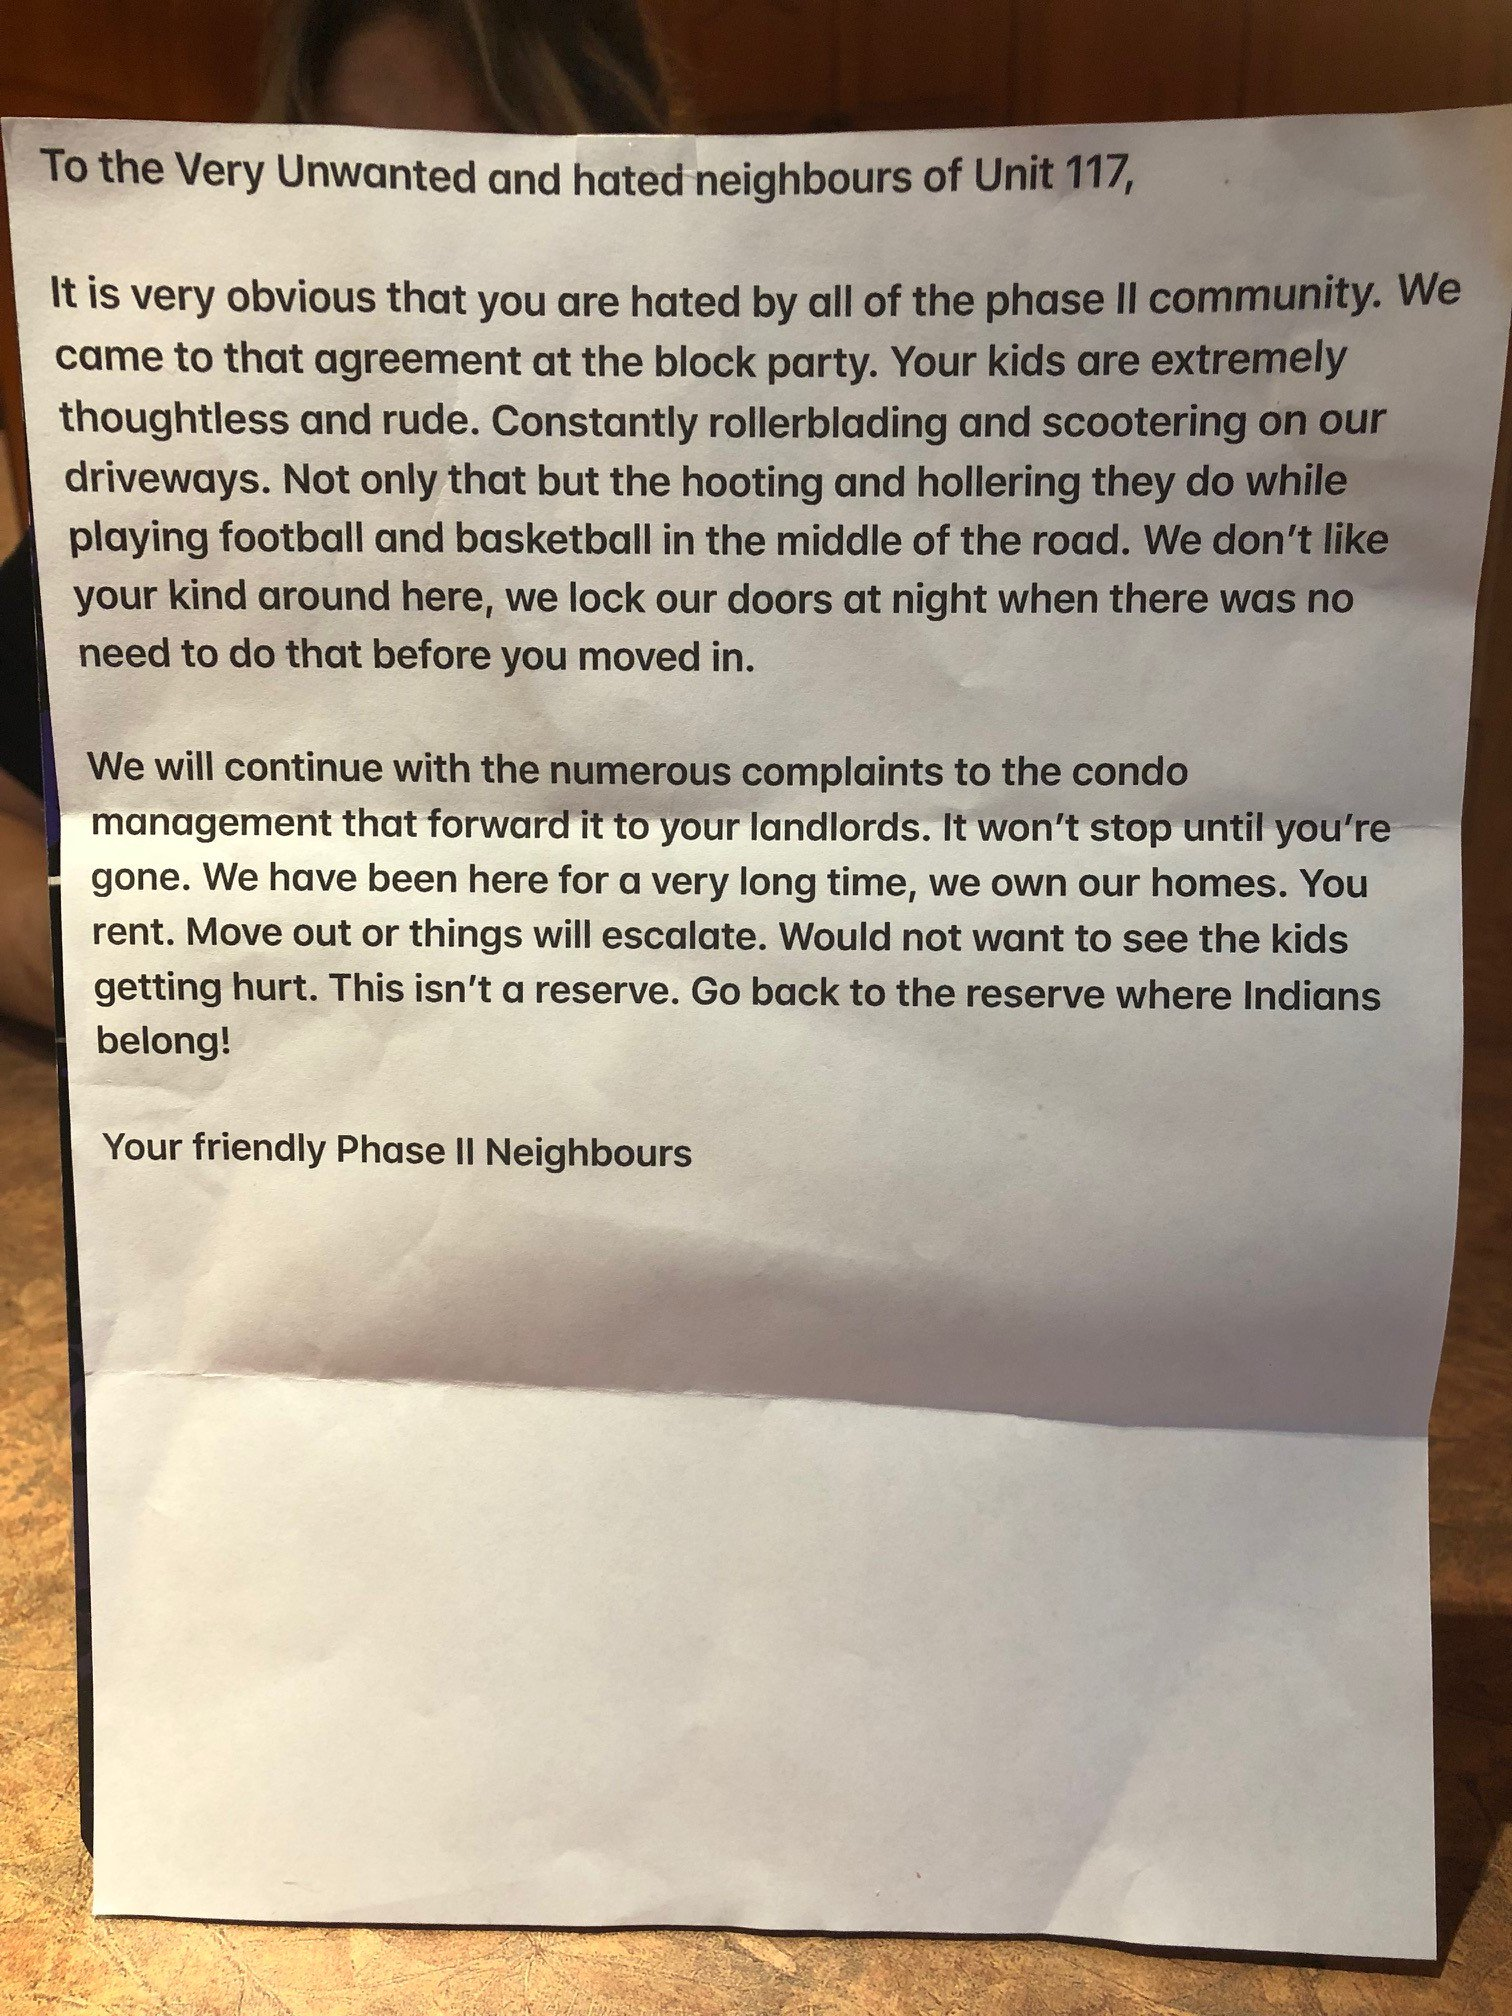 NEIGHBOURS OF ST. ALBERT FAMILY TARGETED BY THREATENING RACIST LETTER PUTTING OUT SOME LOVE